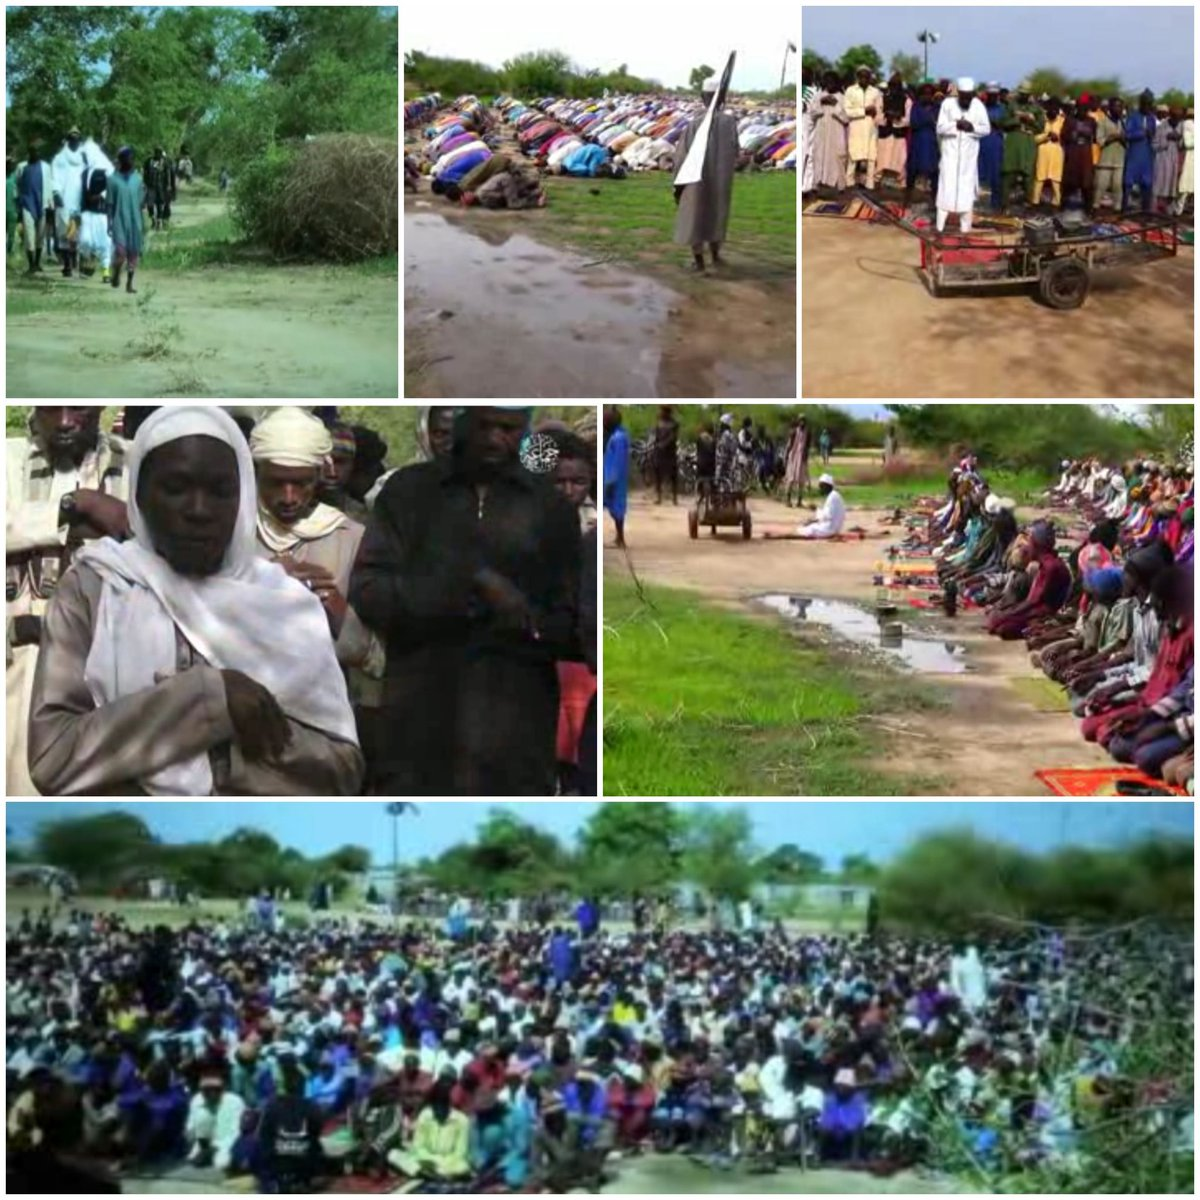 VIDEO: How Boko Haram terrorists observed Eid prayer in various locations of Sambisa forests